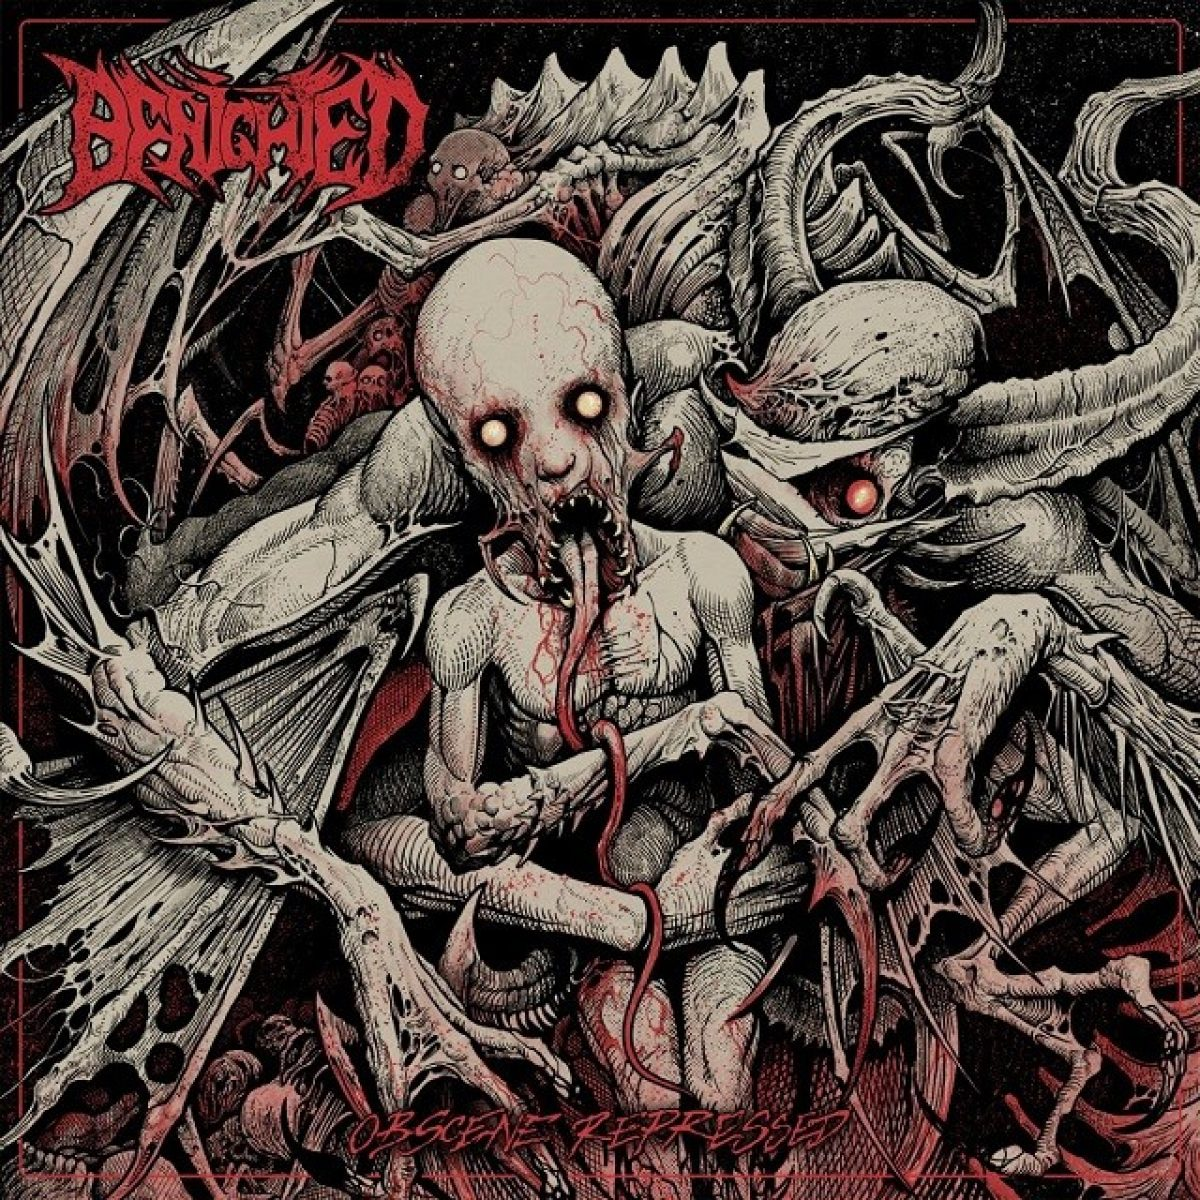 benighted et l'album« Obscene Repressed